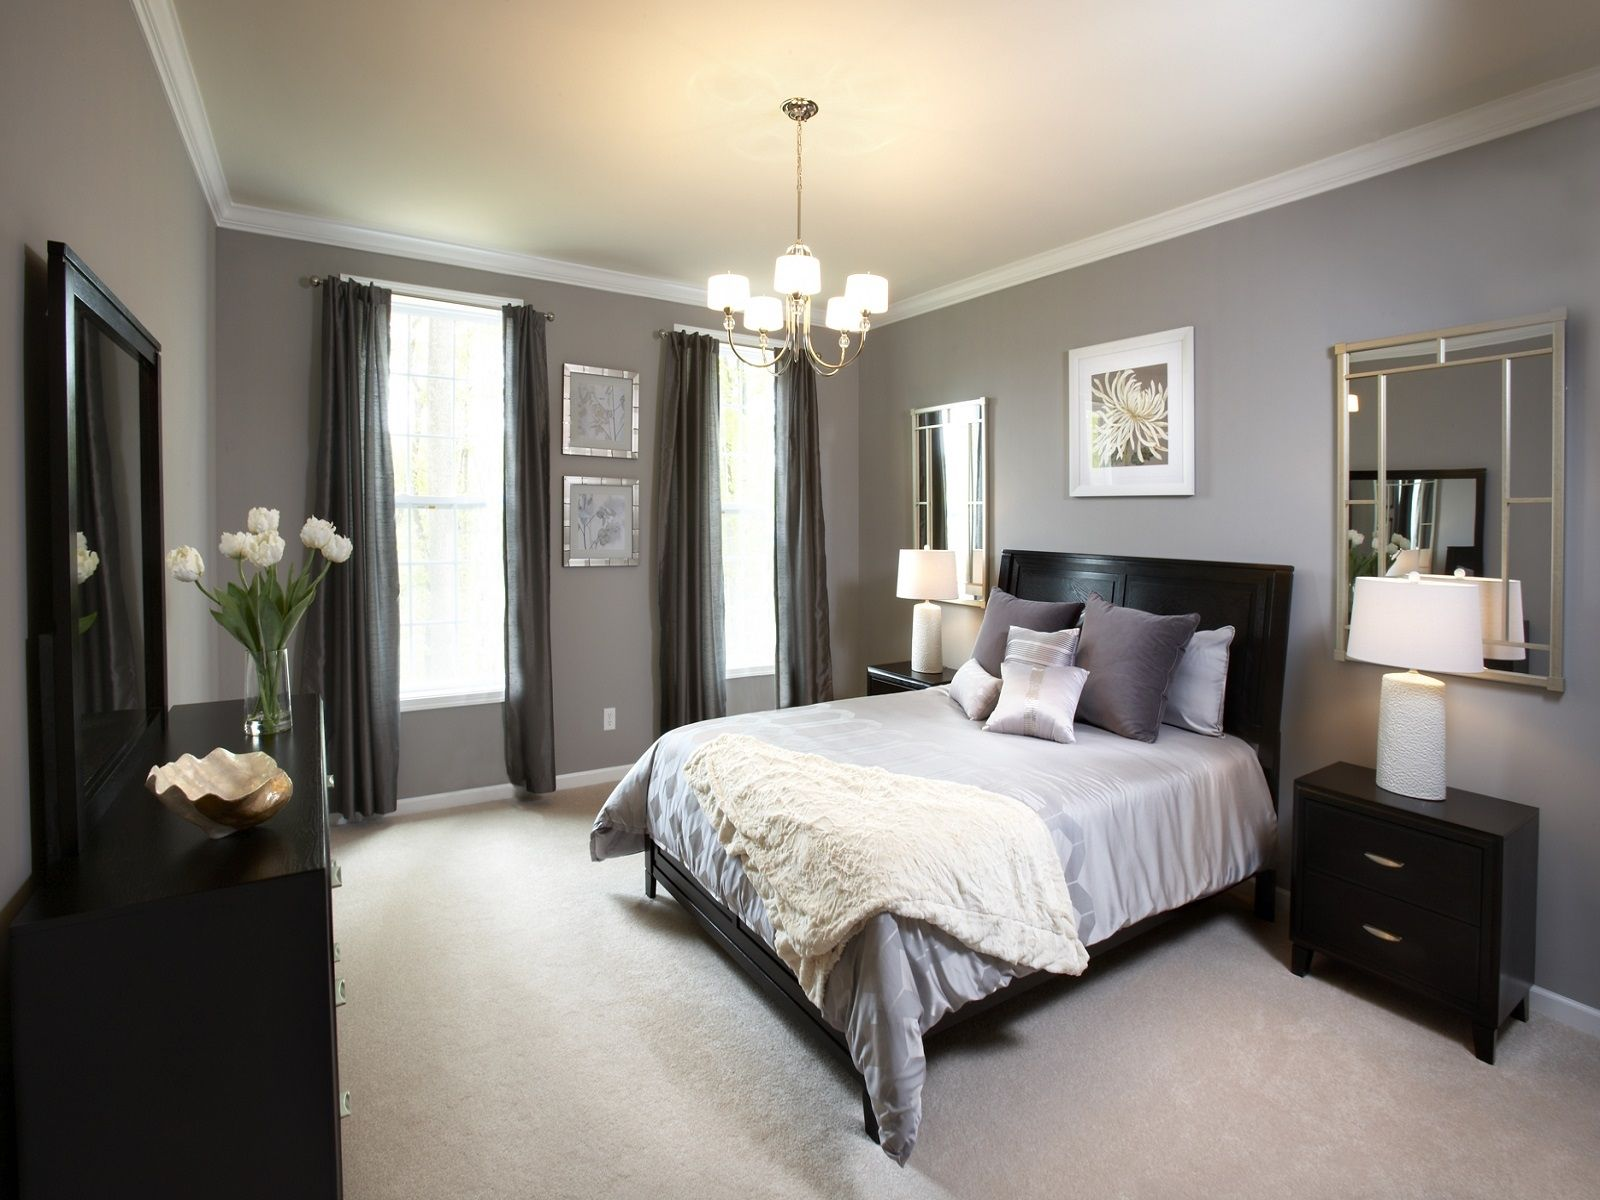 45 Beautiful Paint Color Ideas for Master Bedroom | Bedrooms and ...